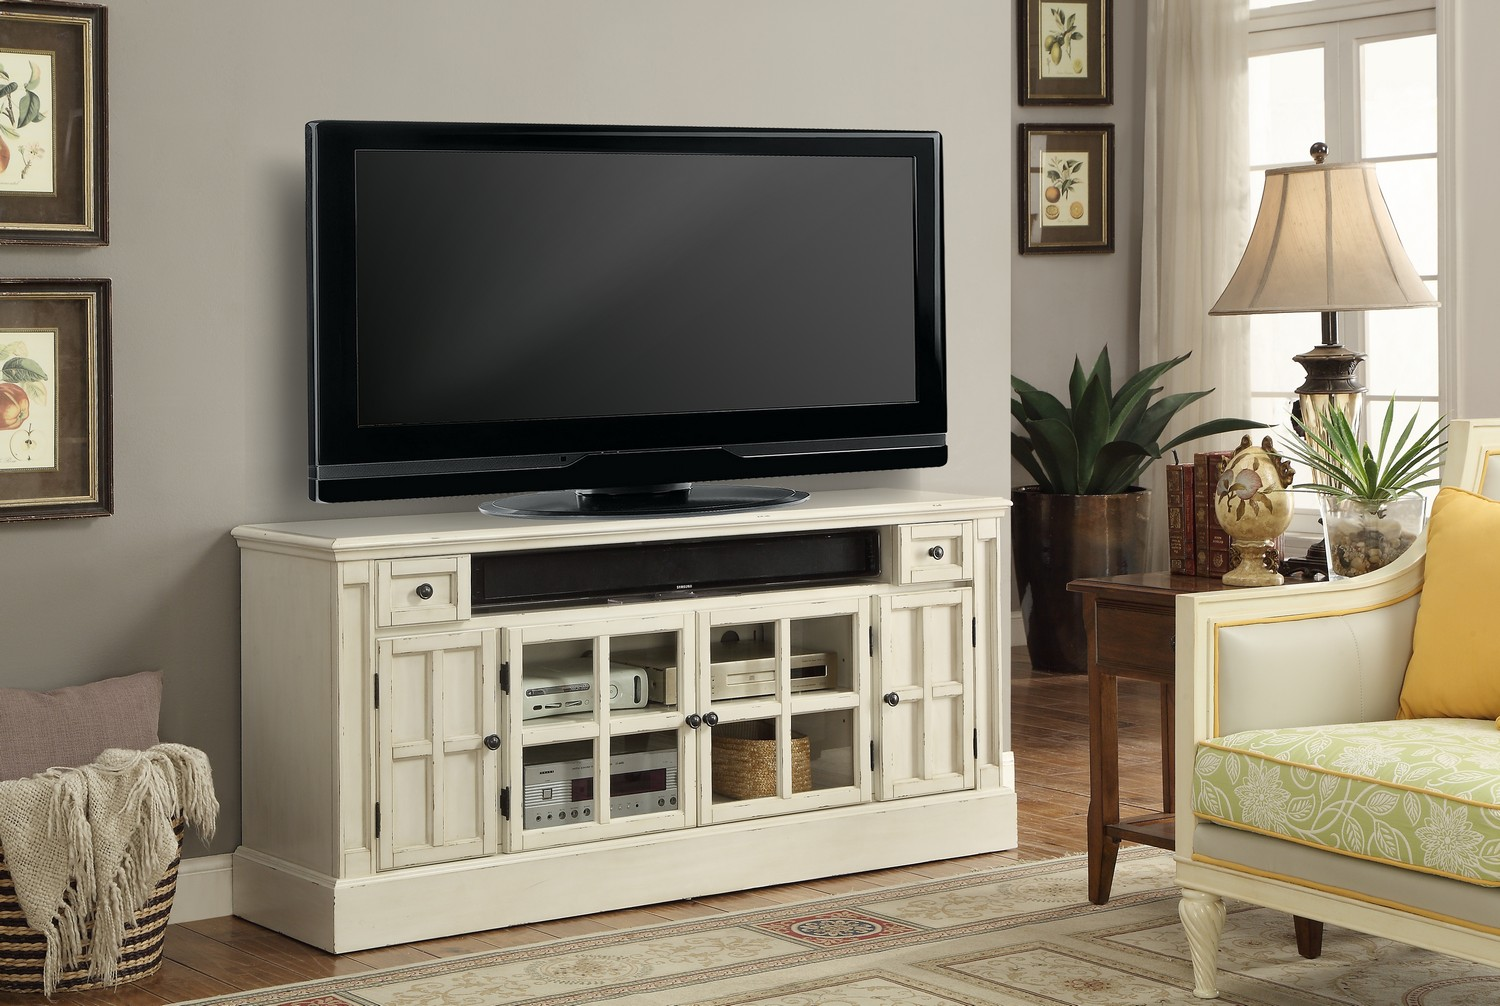 Parker House Charlotte 62-inch TV Console with Power Center